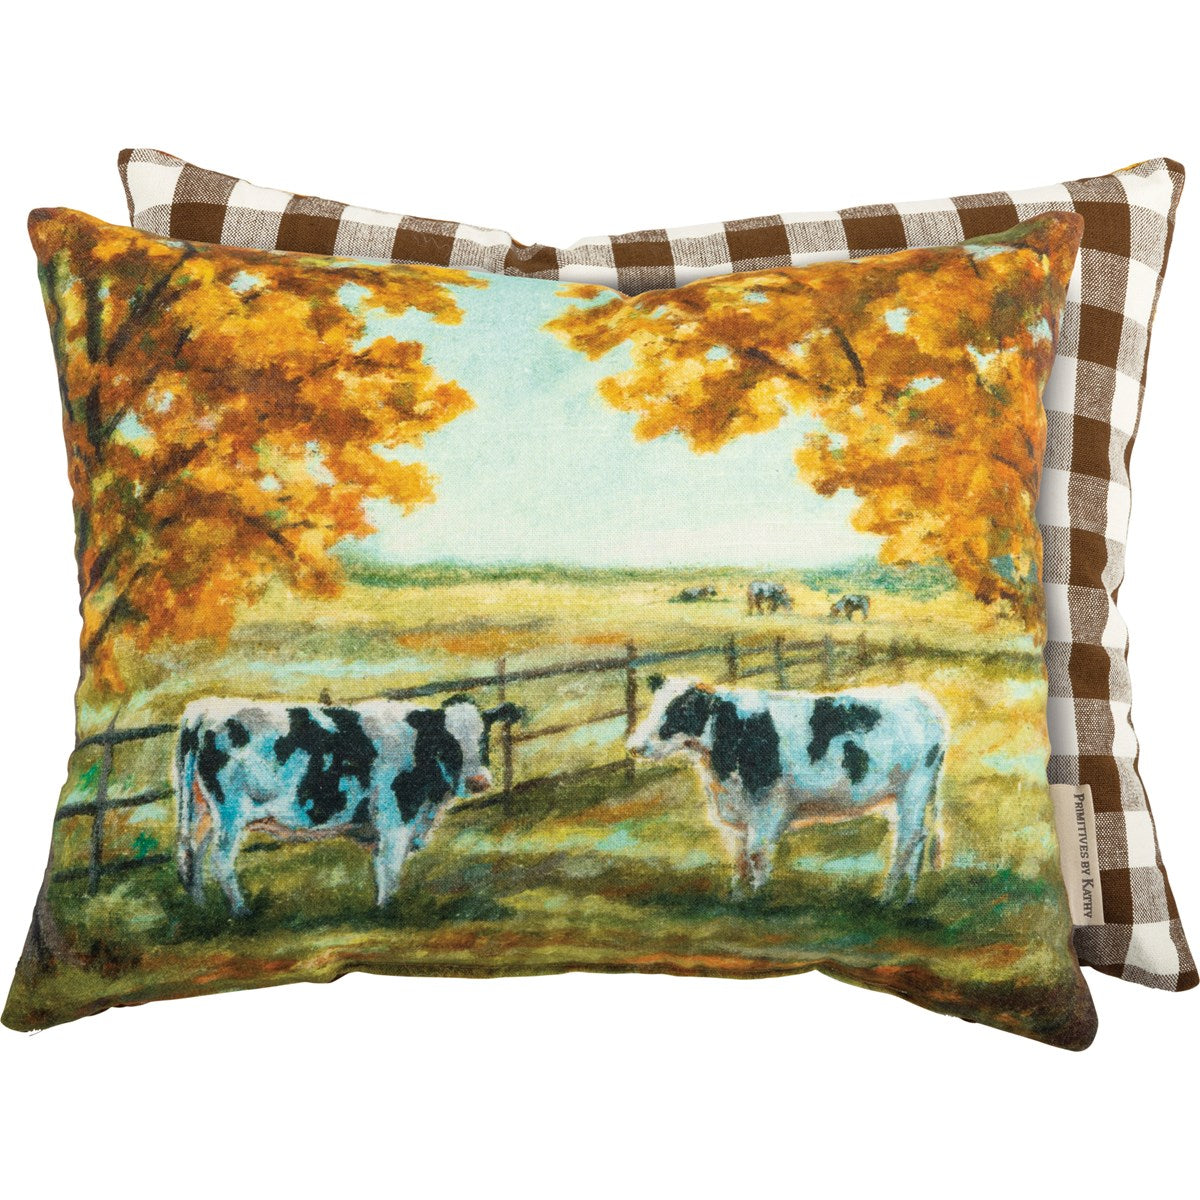 Fall Cow Pillow